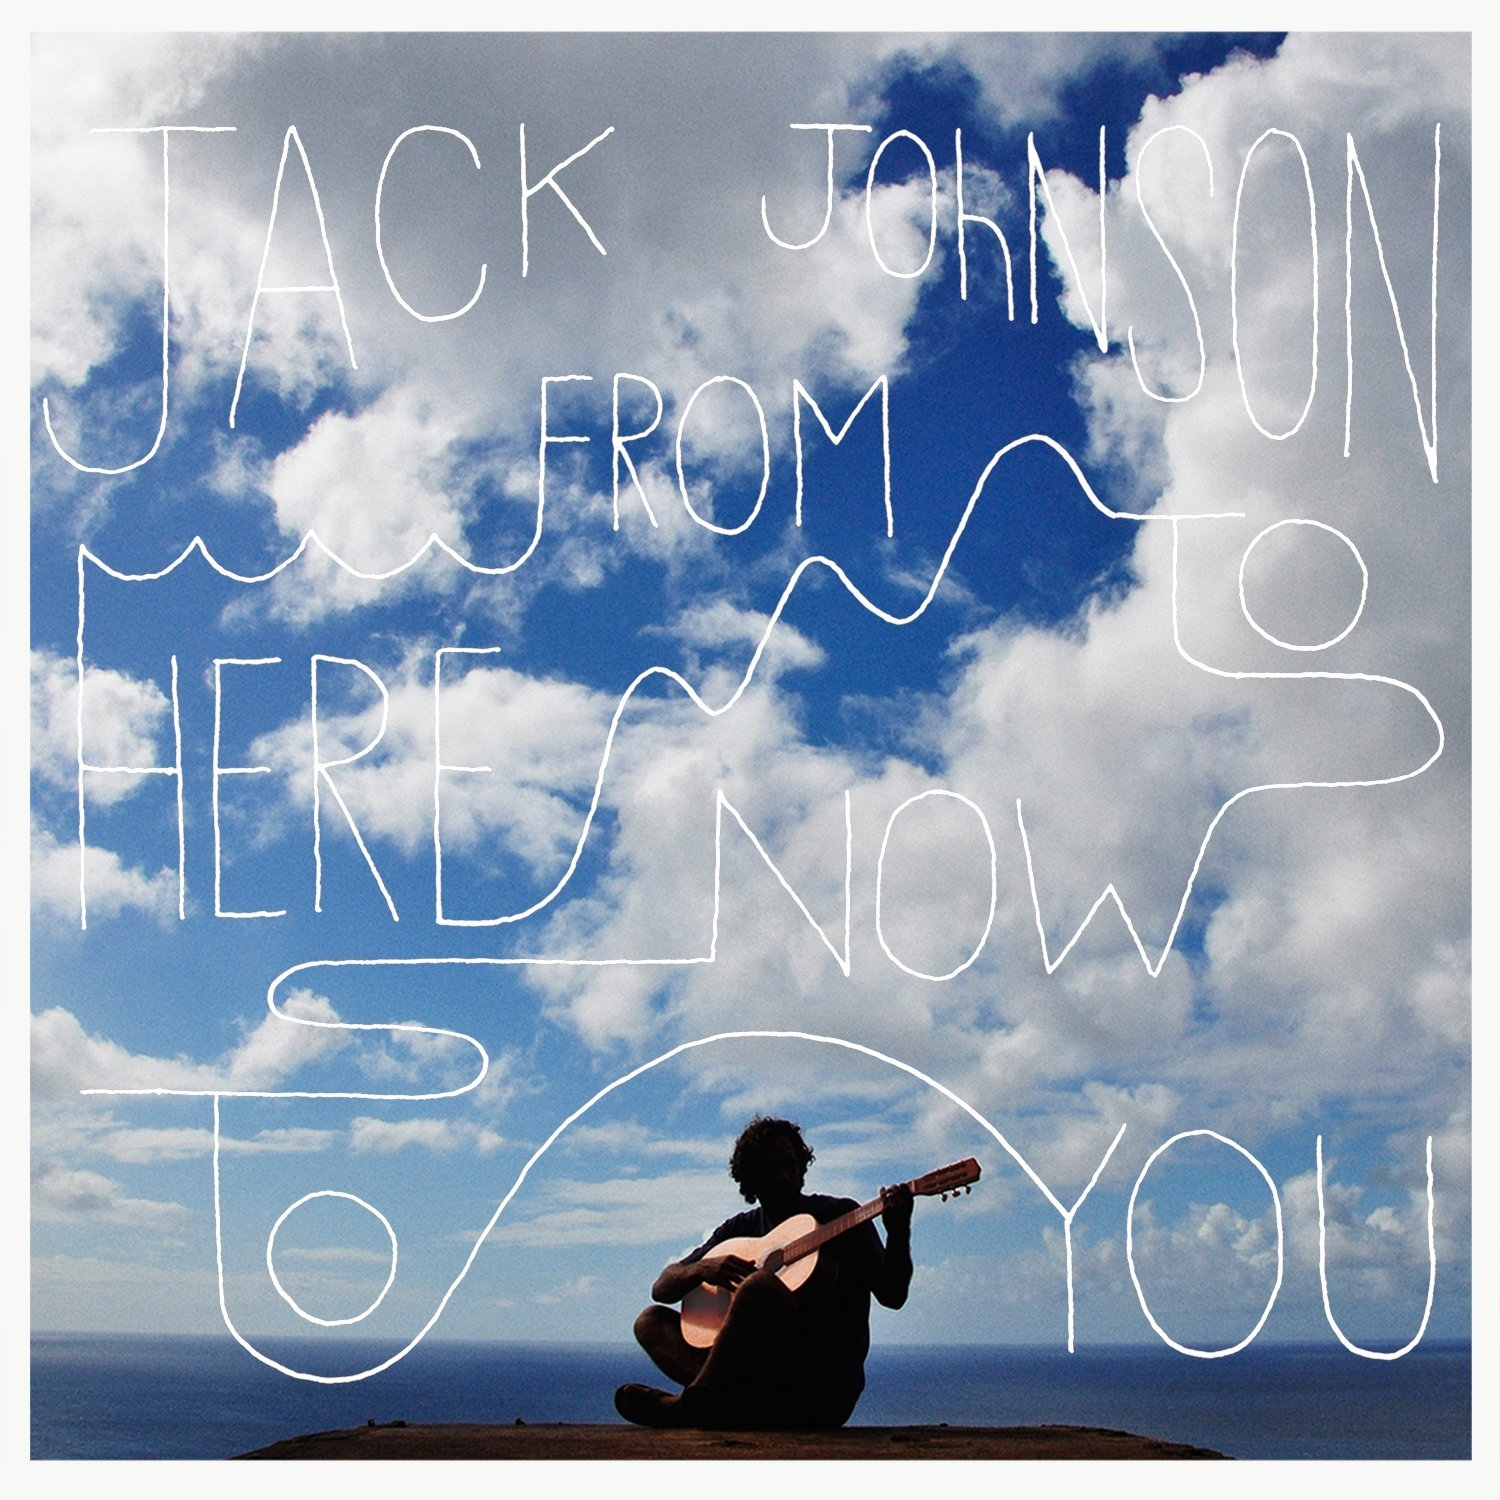 Jack Johnson - From Here To Now To You(2013)_mp3bst.com